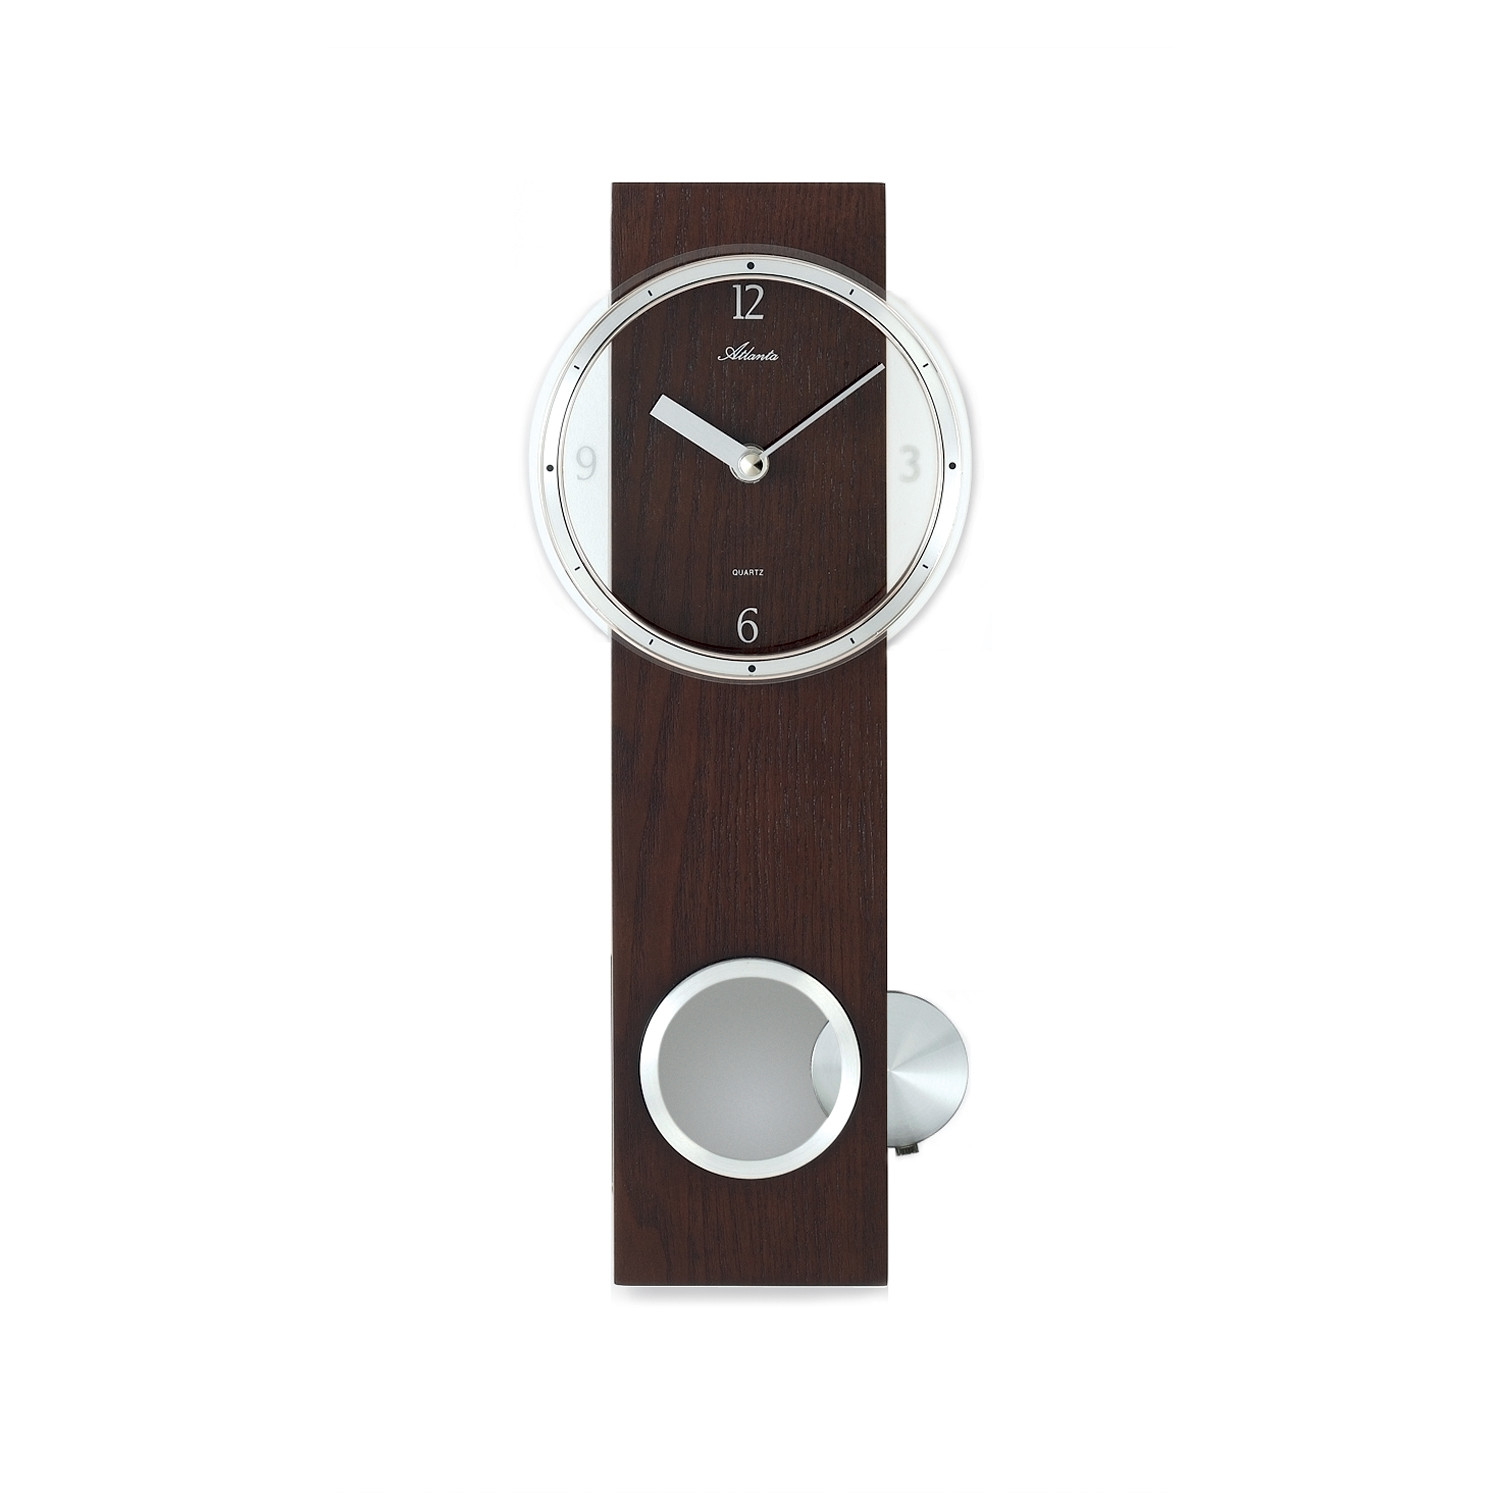 Pendulum wall clock brown atlanta by paragon touch of modern - Stylish pendulum wall clock ...